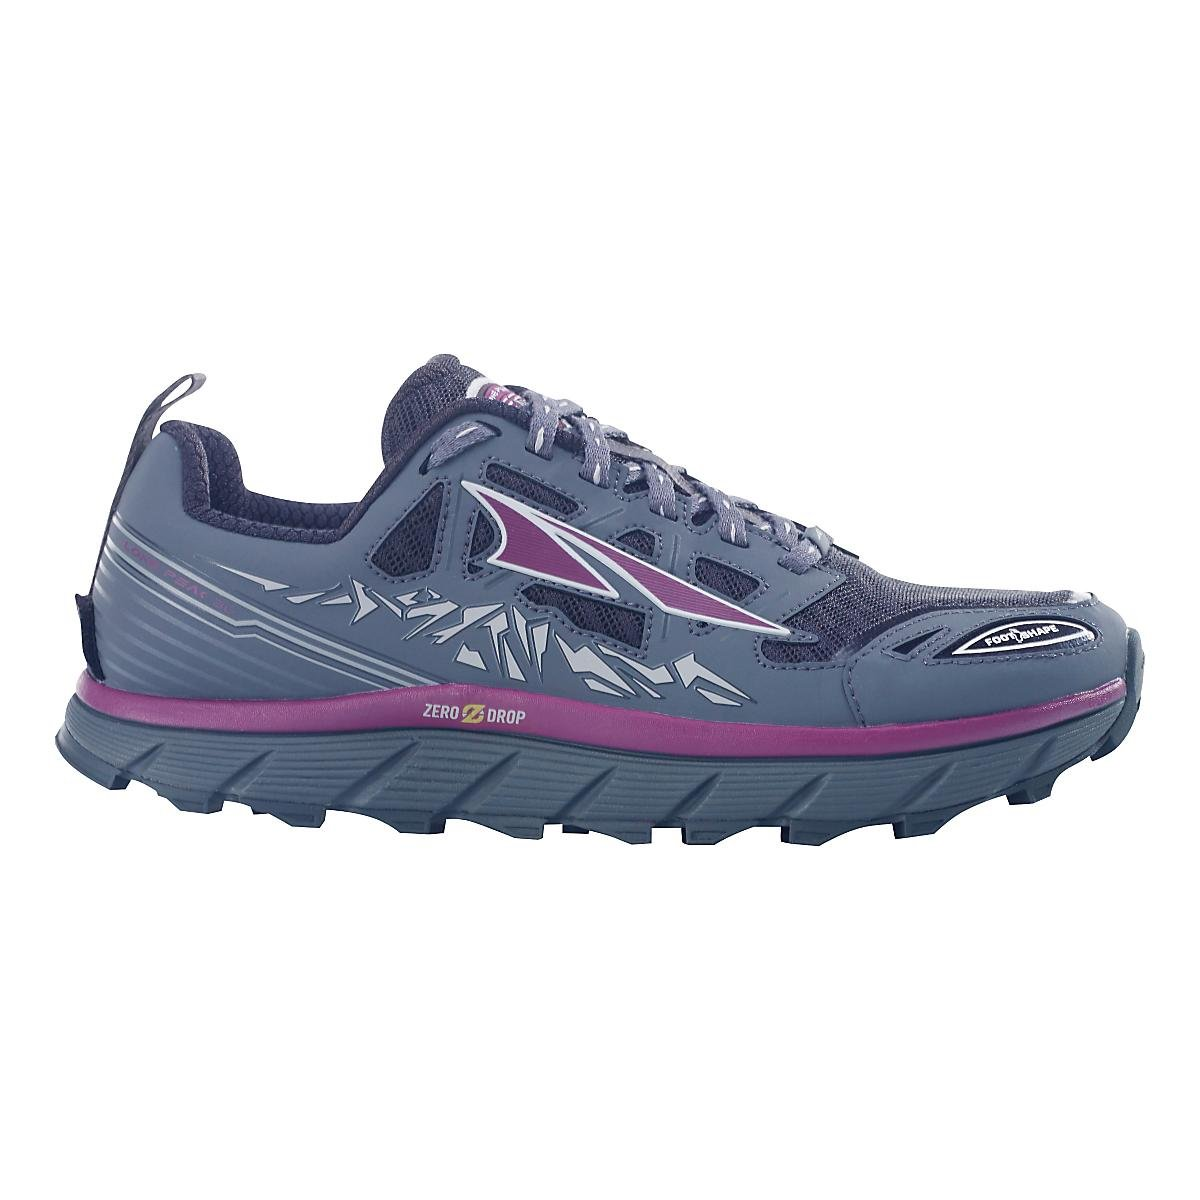 Altra Women's Lone Peak 3 Trail Runner, Purple, 8 M US by Altra